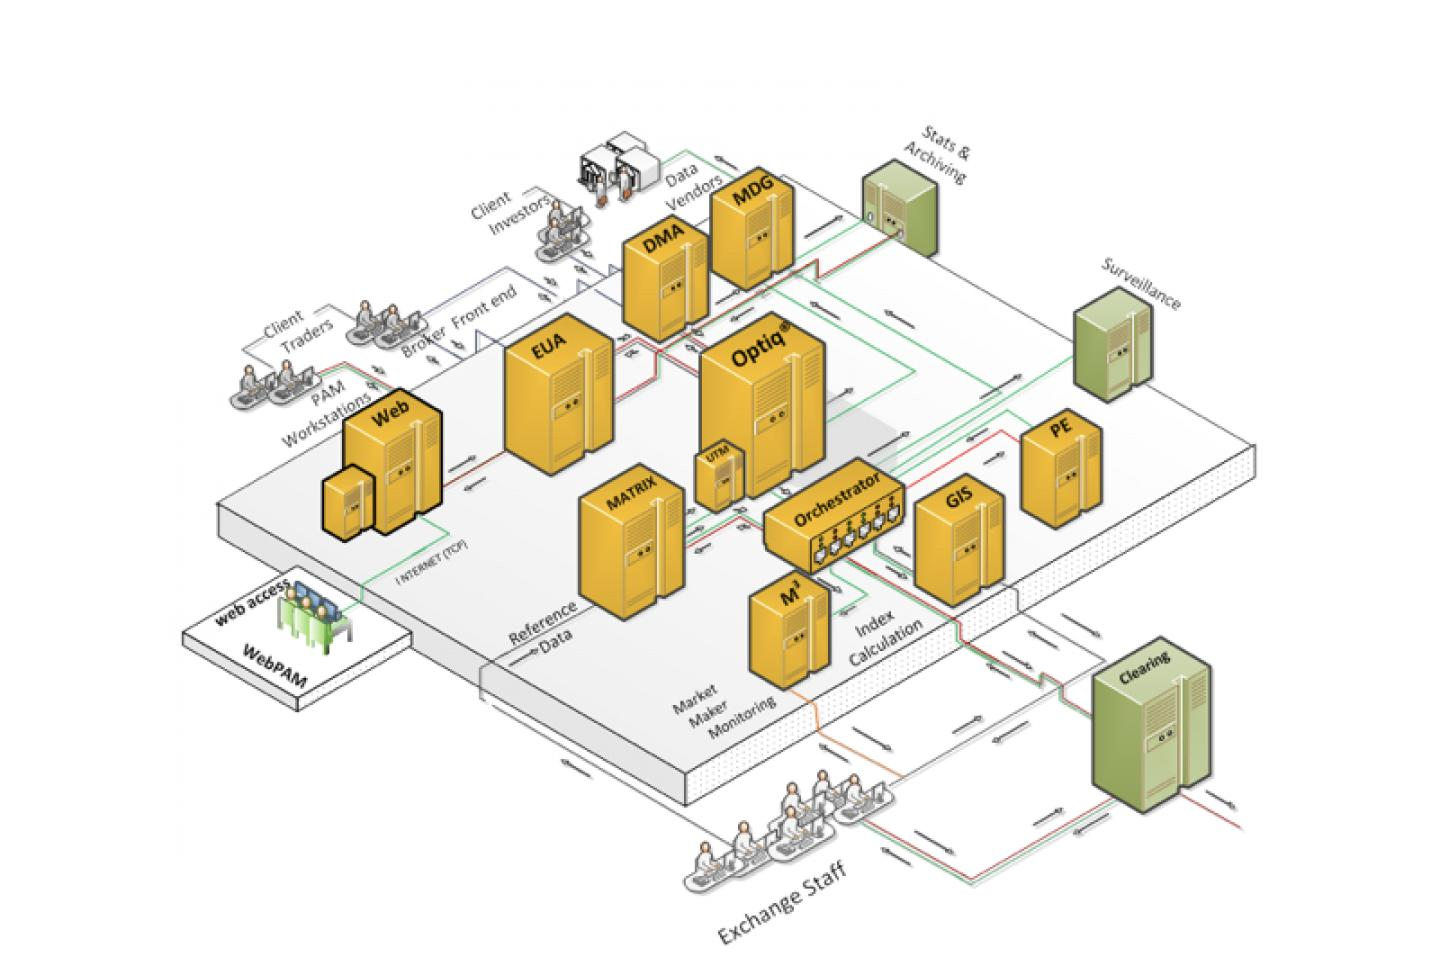 Optiq® deployed in your data centre diagram